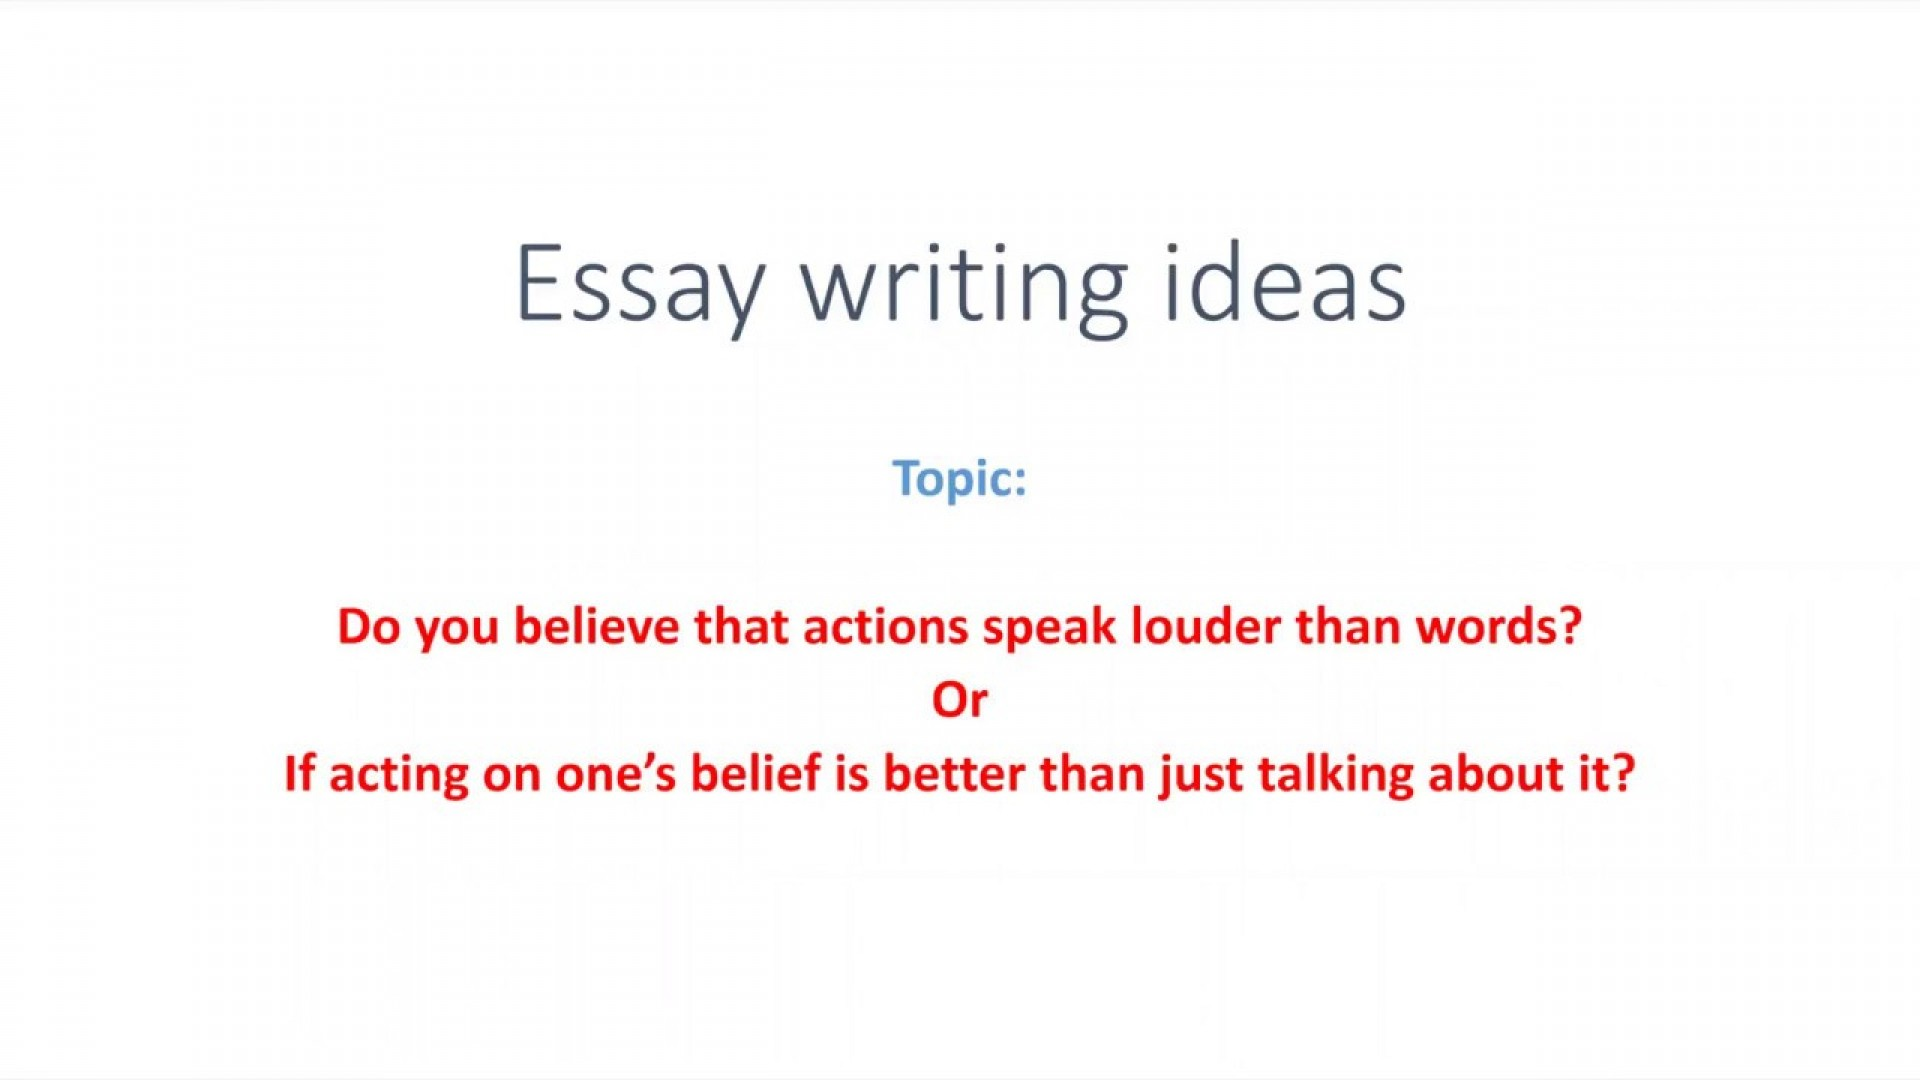 004 Actions Speak Louder Than Words Essay Example Striking Conclusion Css Thesis 1920